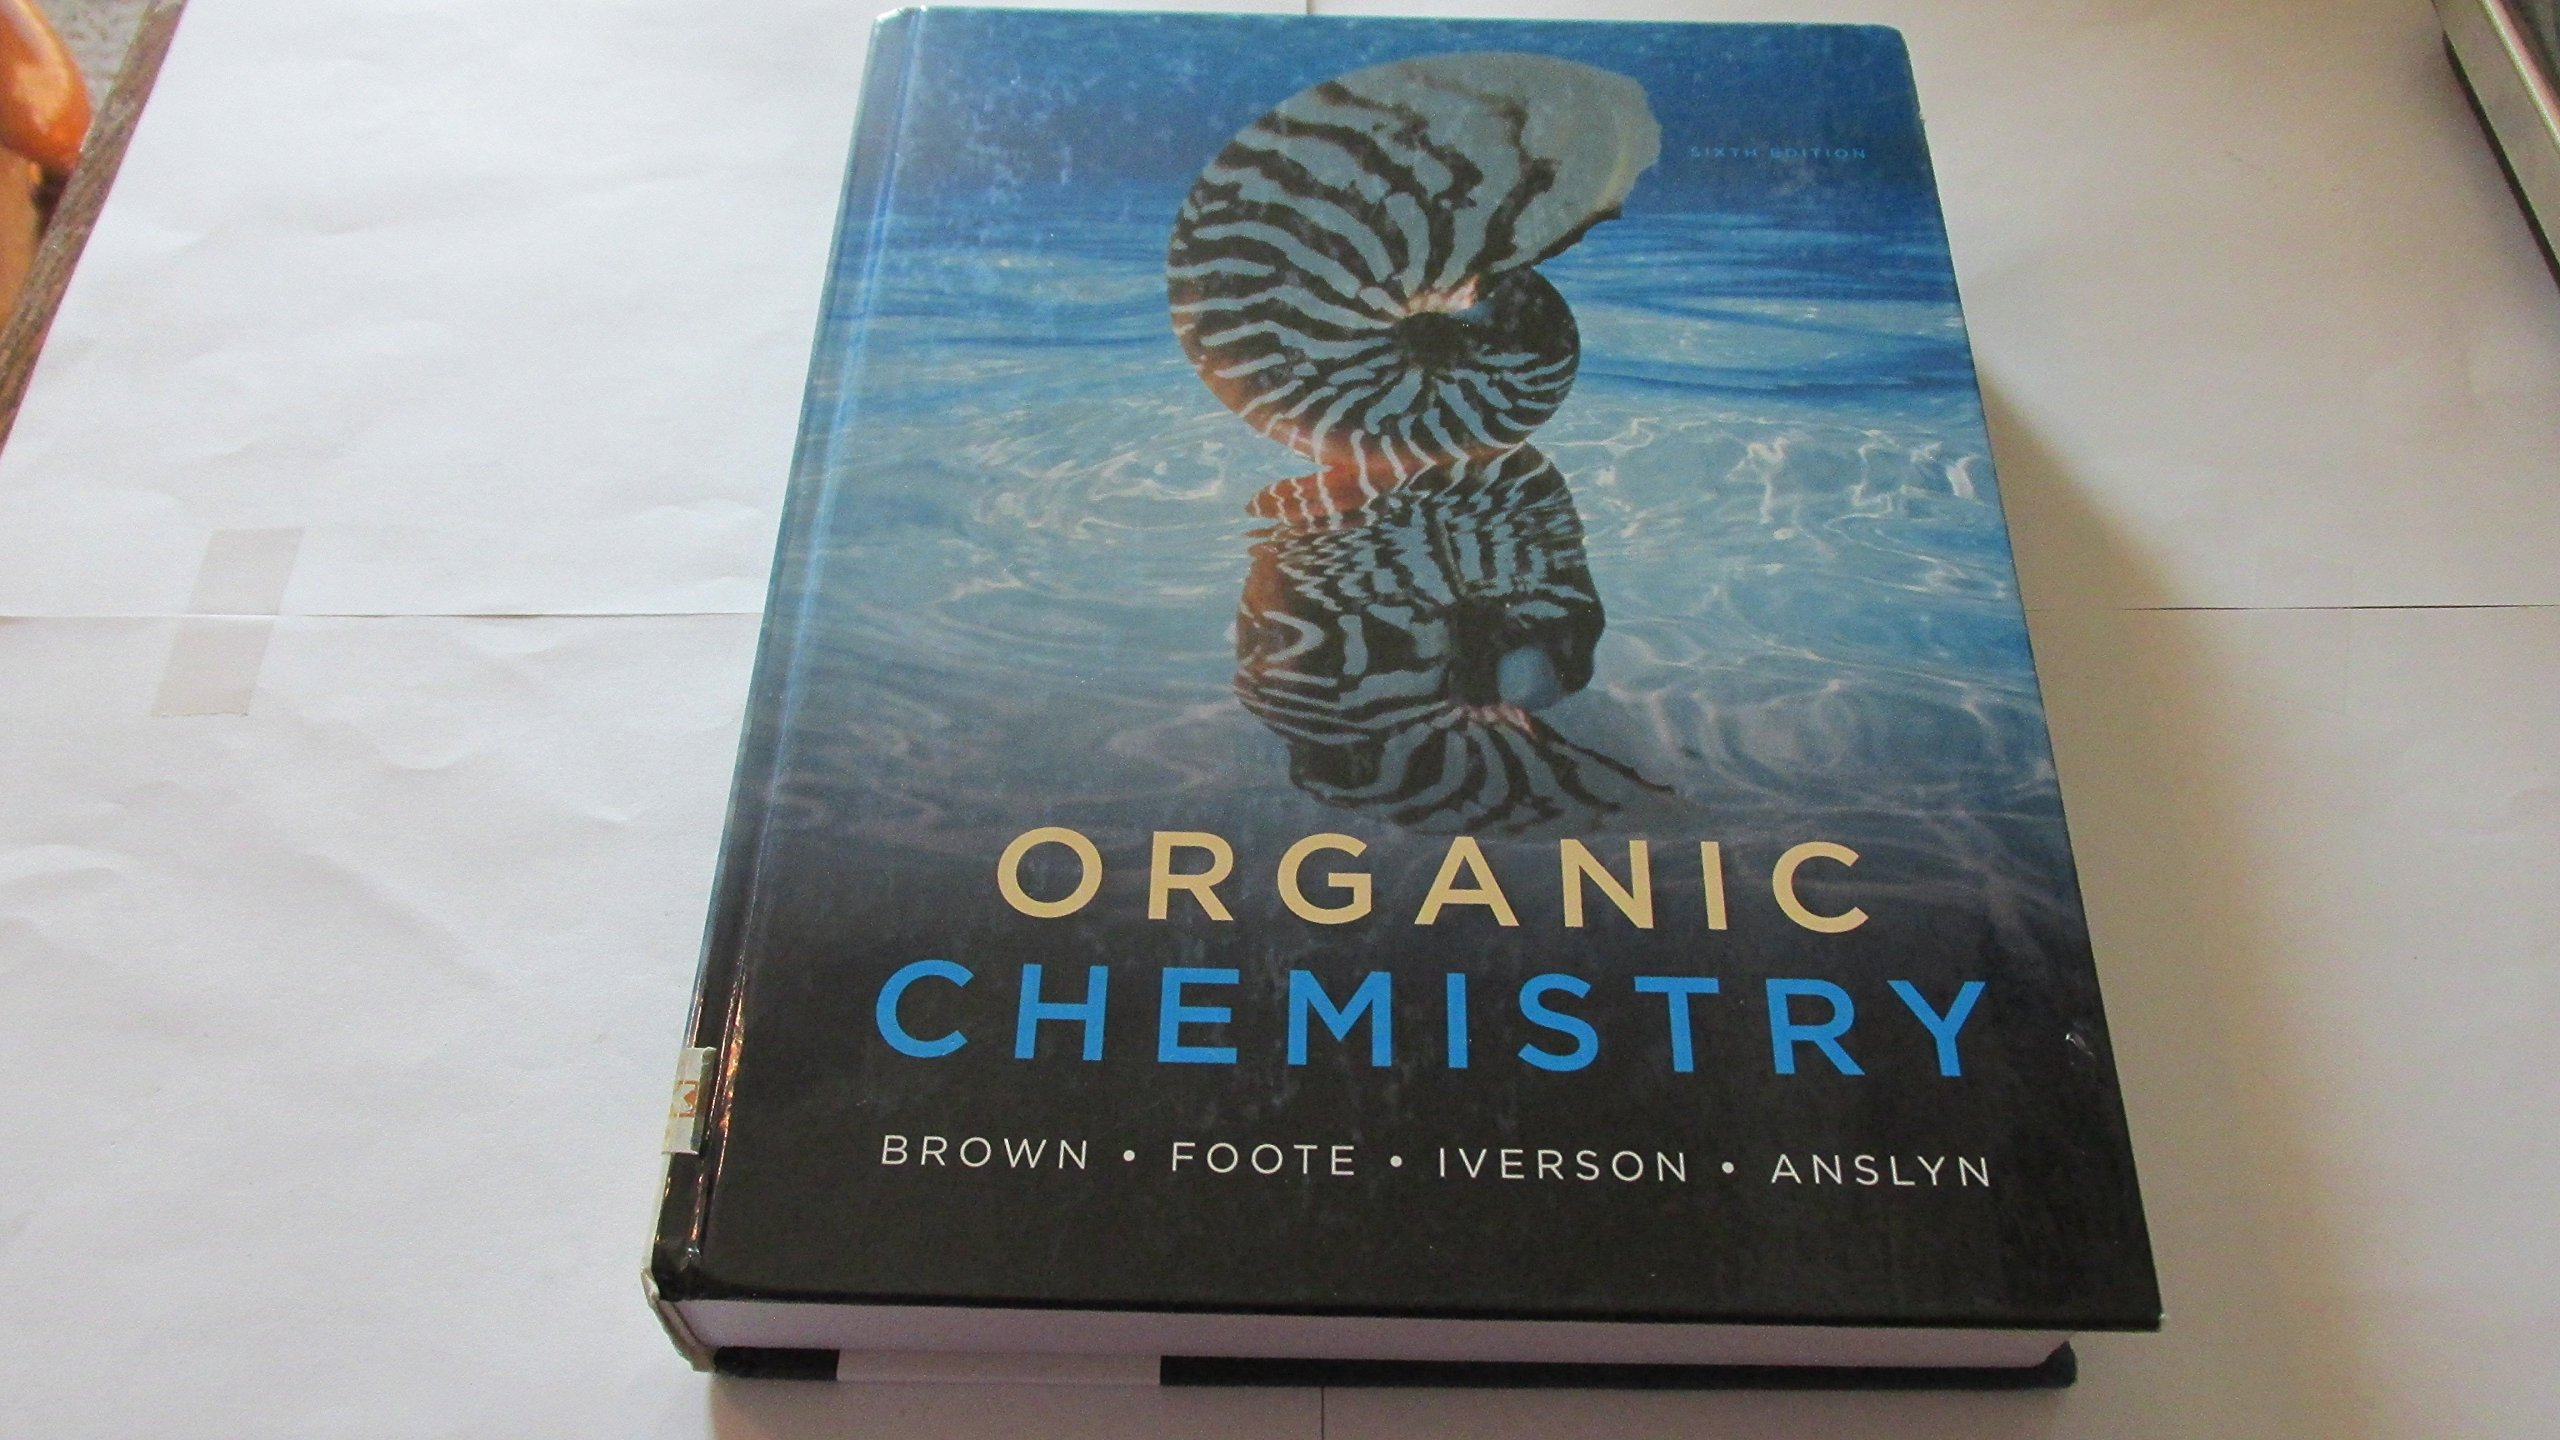 Organic Chemistry 6th Edition Brown Foote Iverson Anslyn (Hardcover): Brown  Foote Iverson Anslyn: 9780840054982: Amazon.com: Books